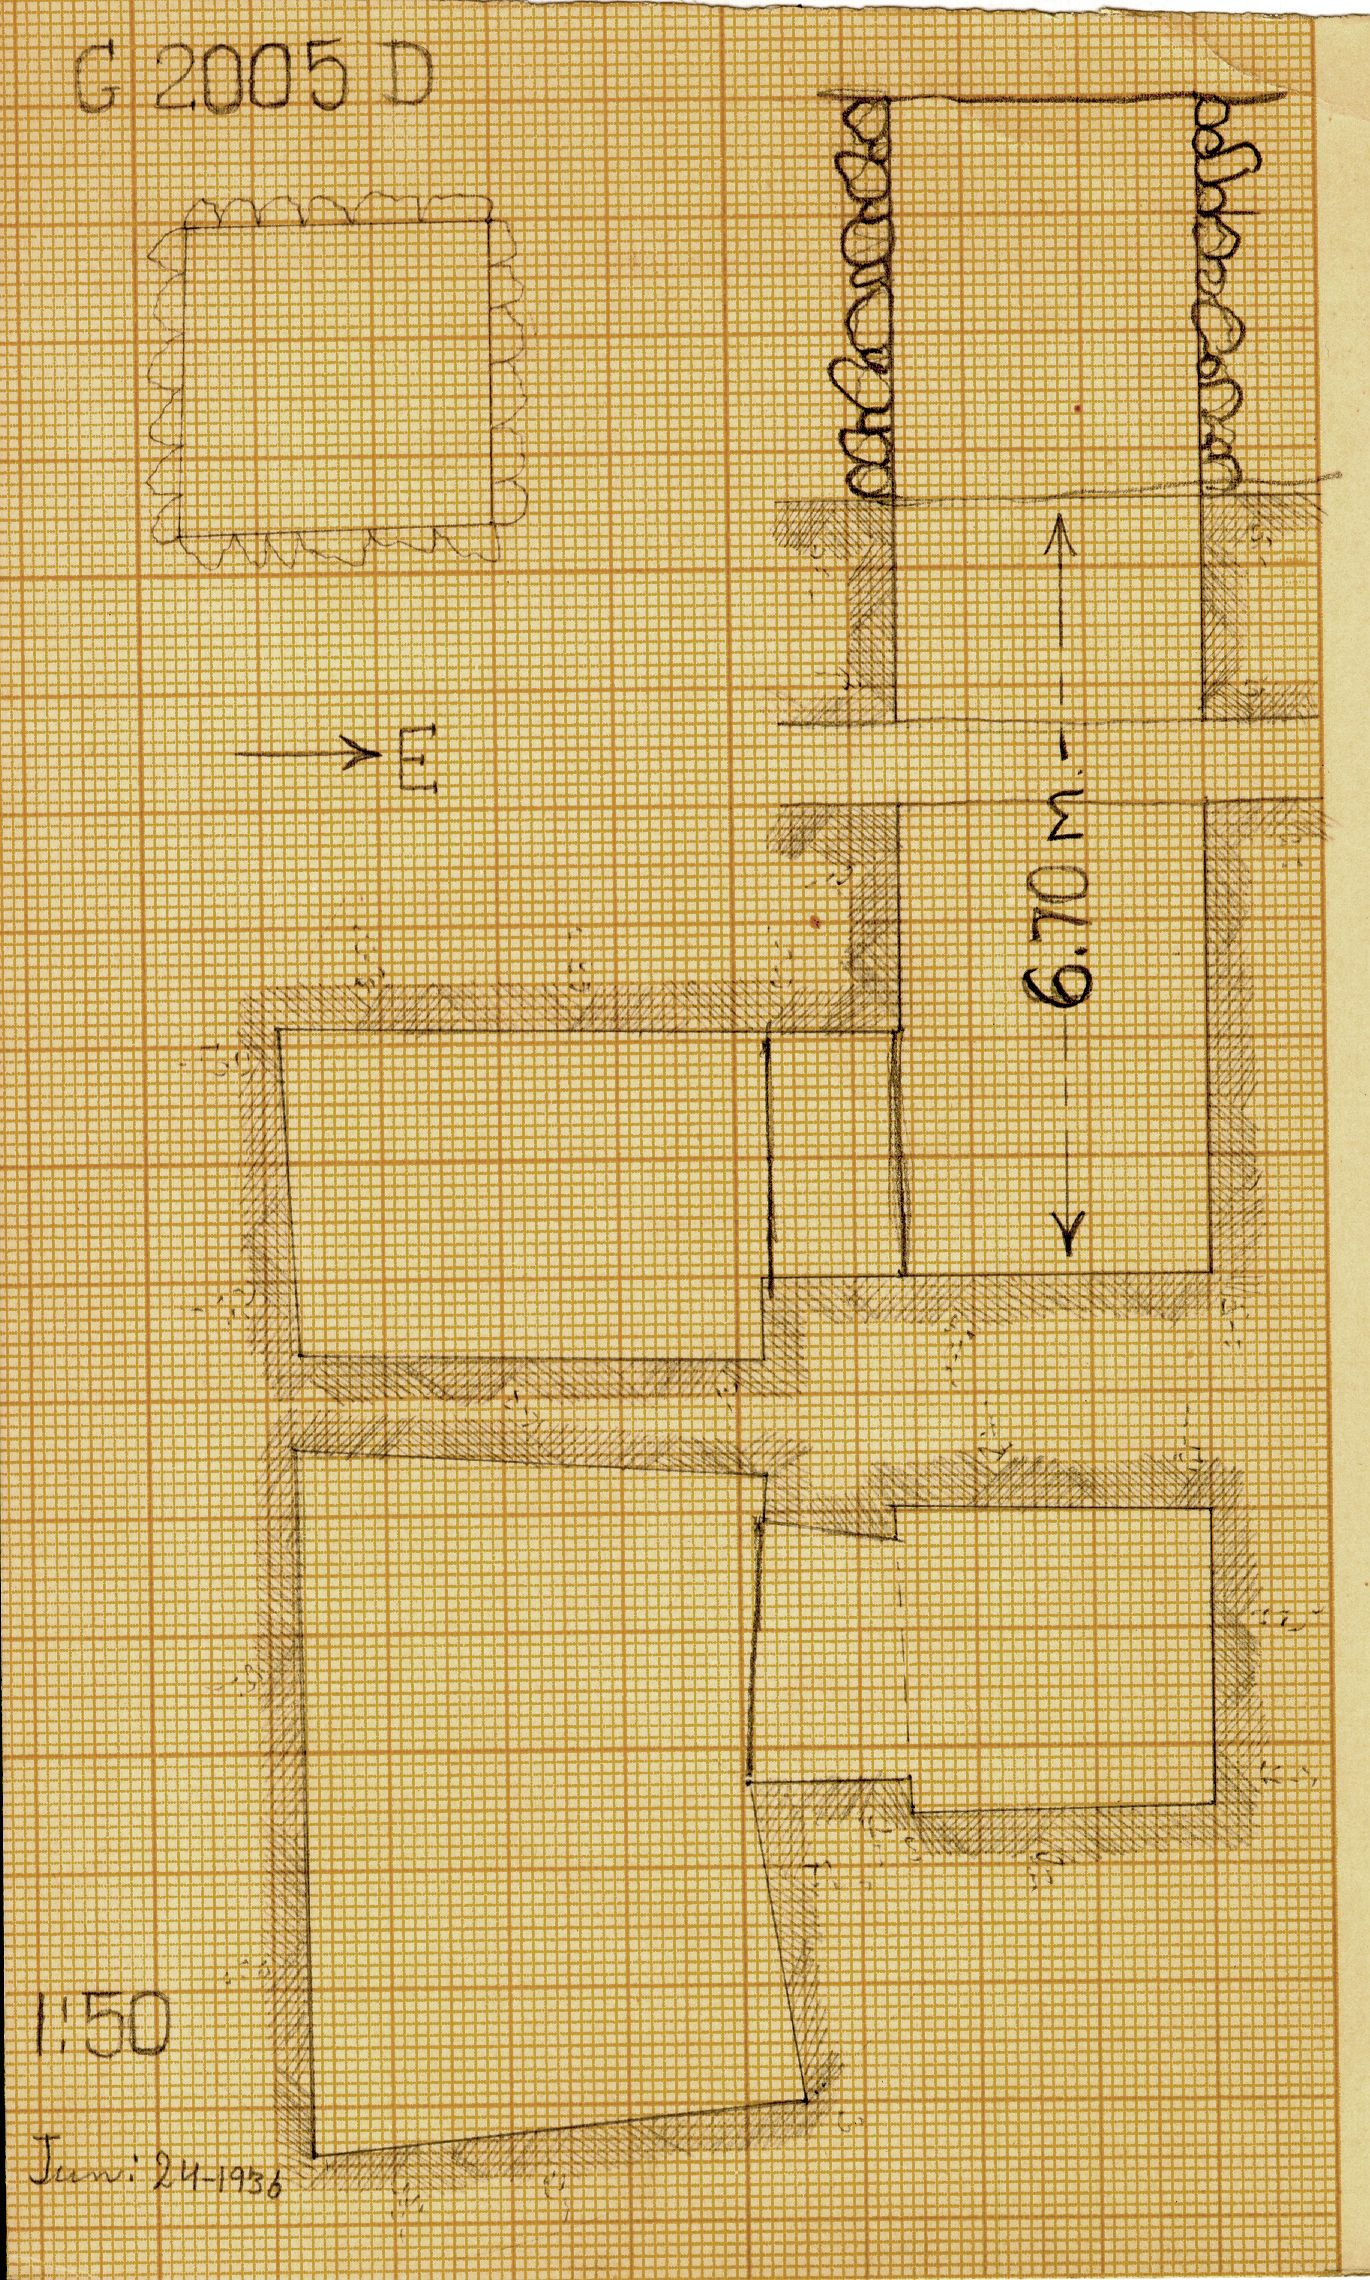 Maps and plans: G 2005, Shaft D